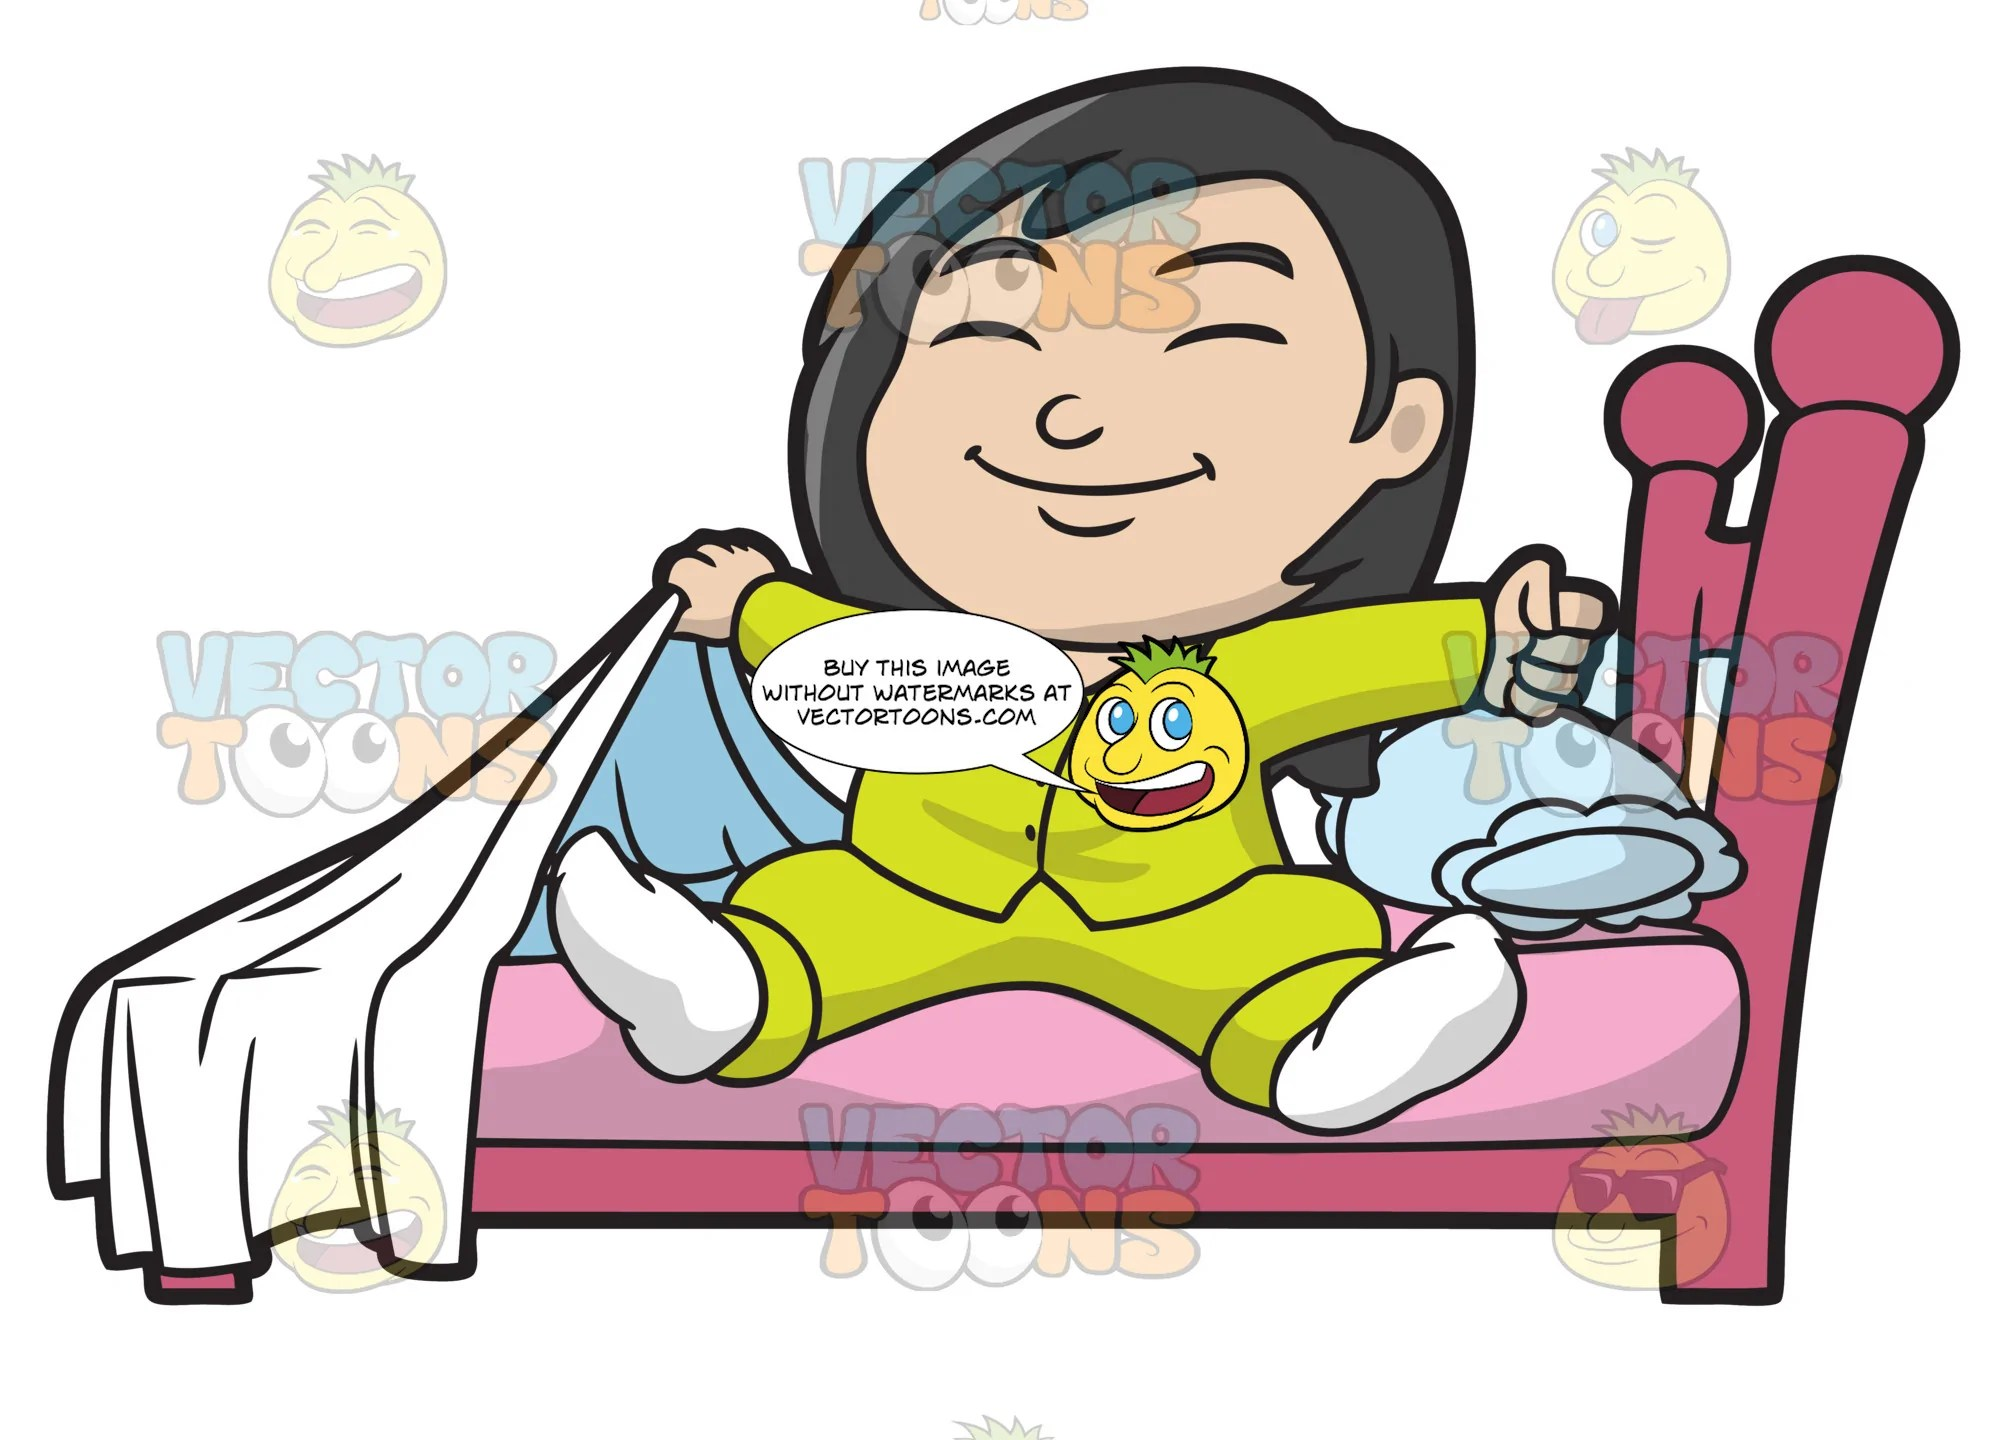 medium resolution of a happy girl stretches her body upon waking up clipart cartoons by vectortoons